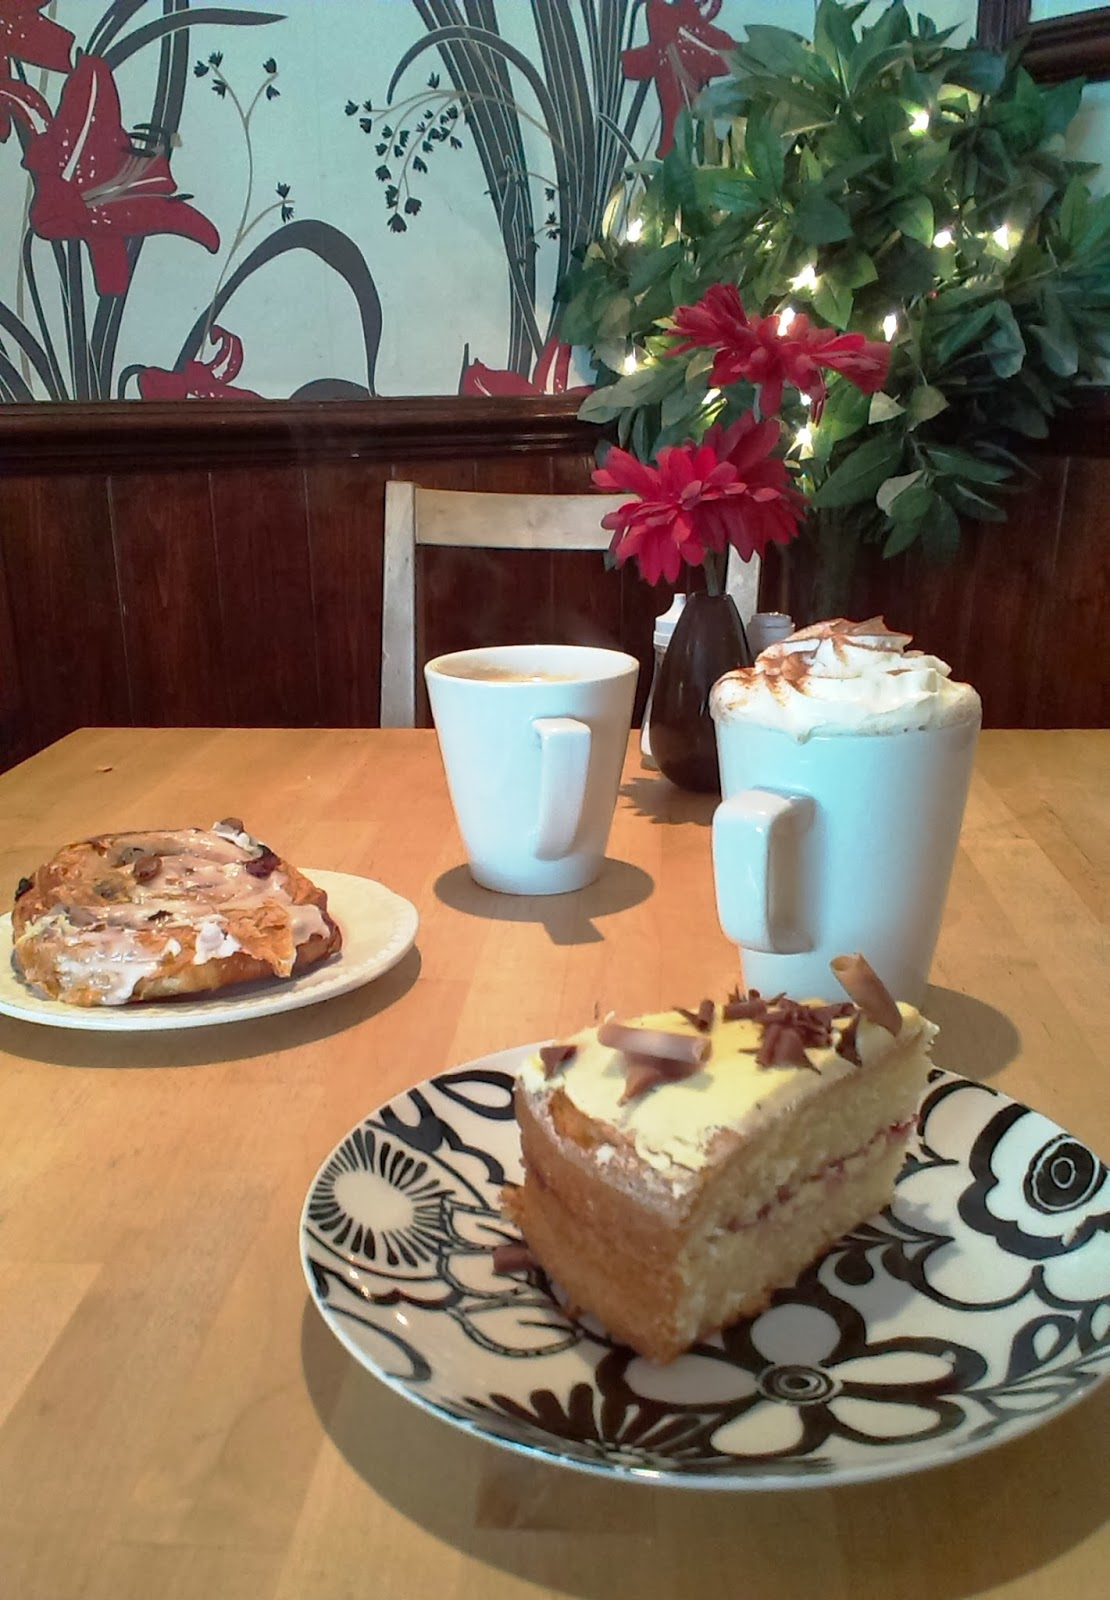 Cake and Hot Chocolate